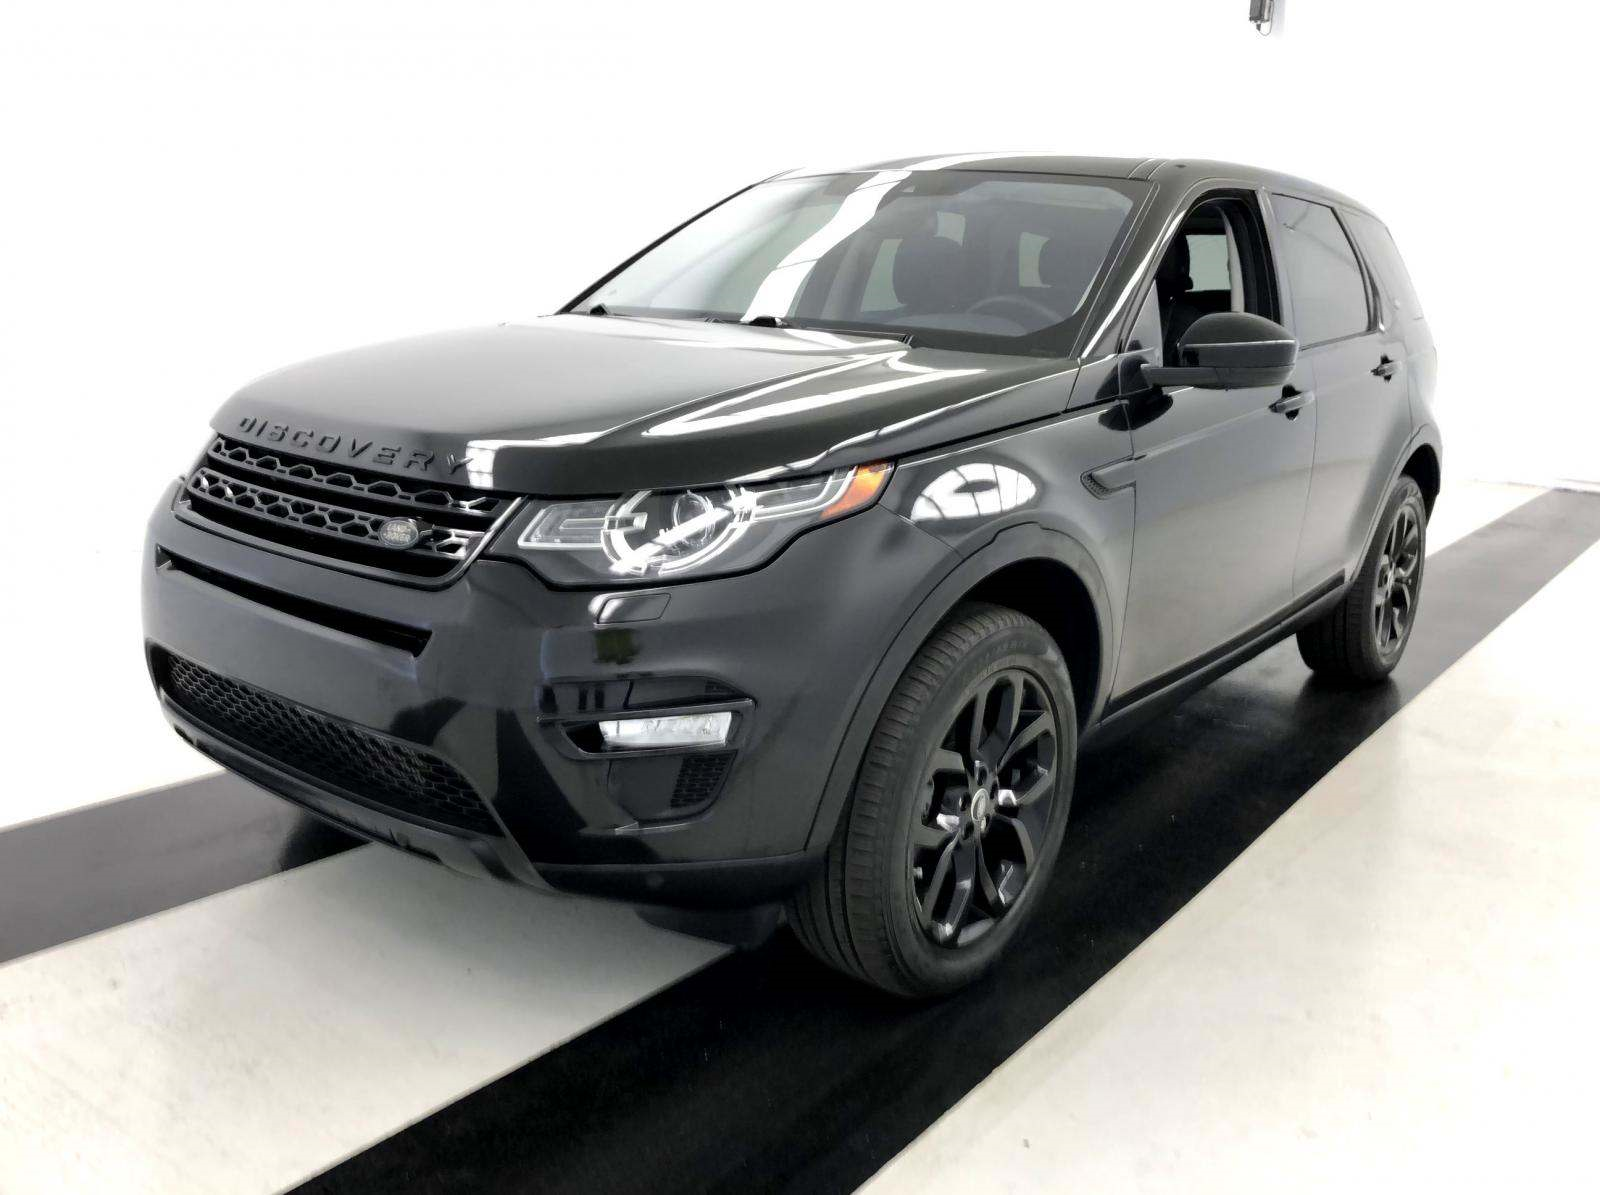 2016 Land Rover Discovery Sport 29960 00 For Sale In Stafford Tx 77477 Incacar Com Land Rover Discovery Sport Land Rover Buy Used Cars